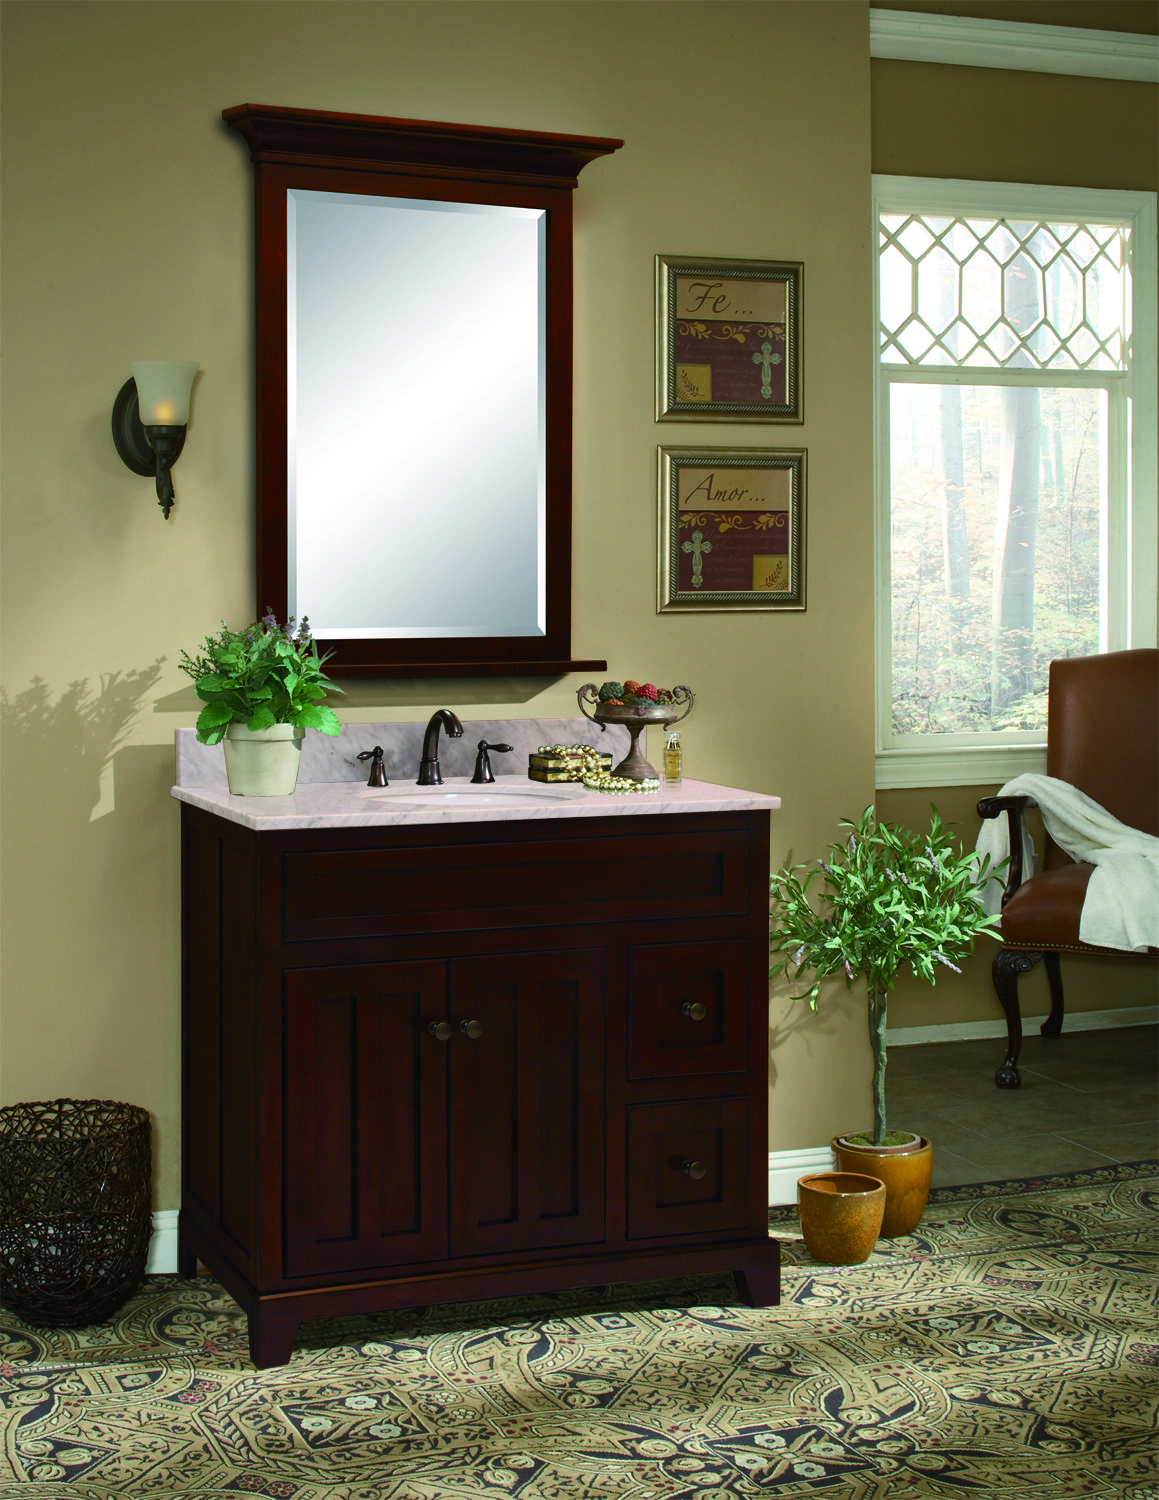 Sunnywood Kitchen Cabinets Sunny Wood Gh4821d Grand Haven Grand Haven 48 Maple Wood Vanity